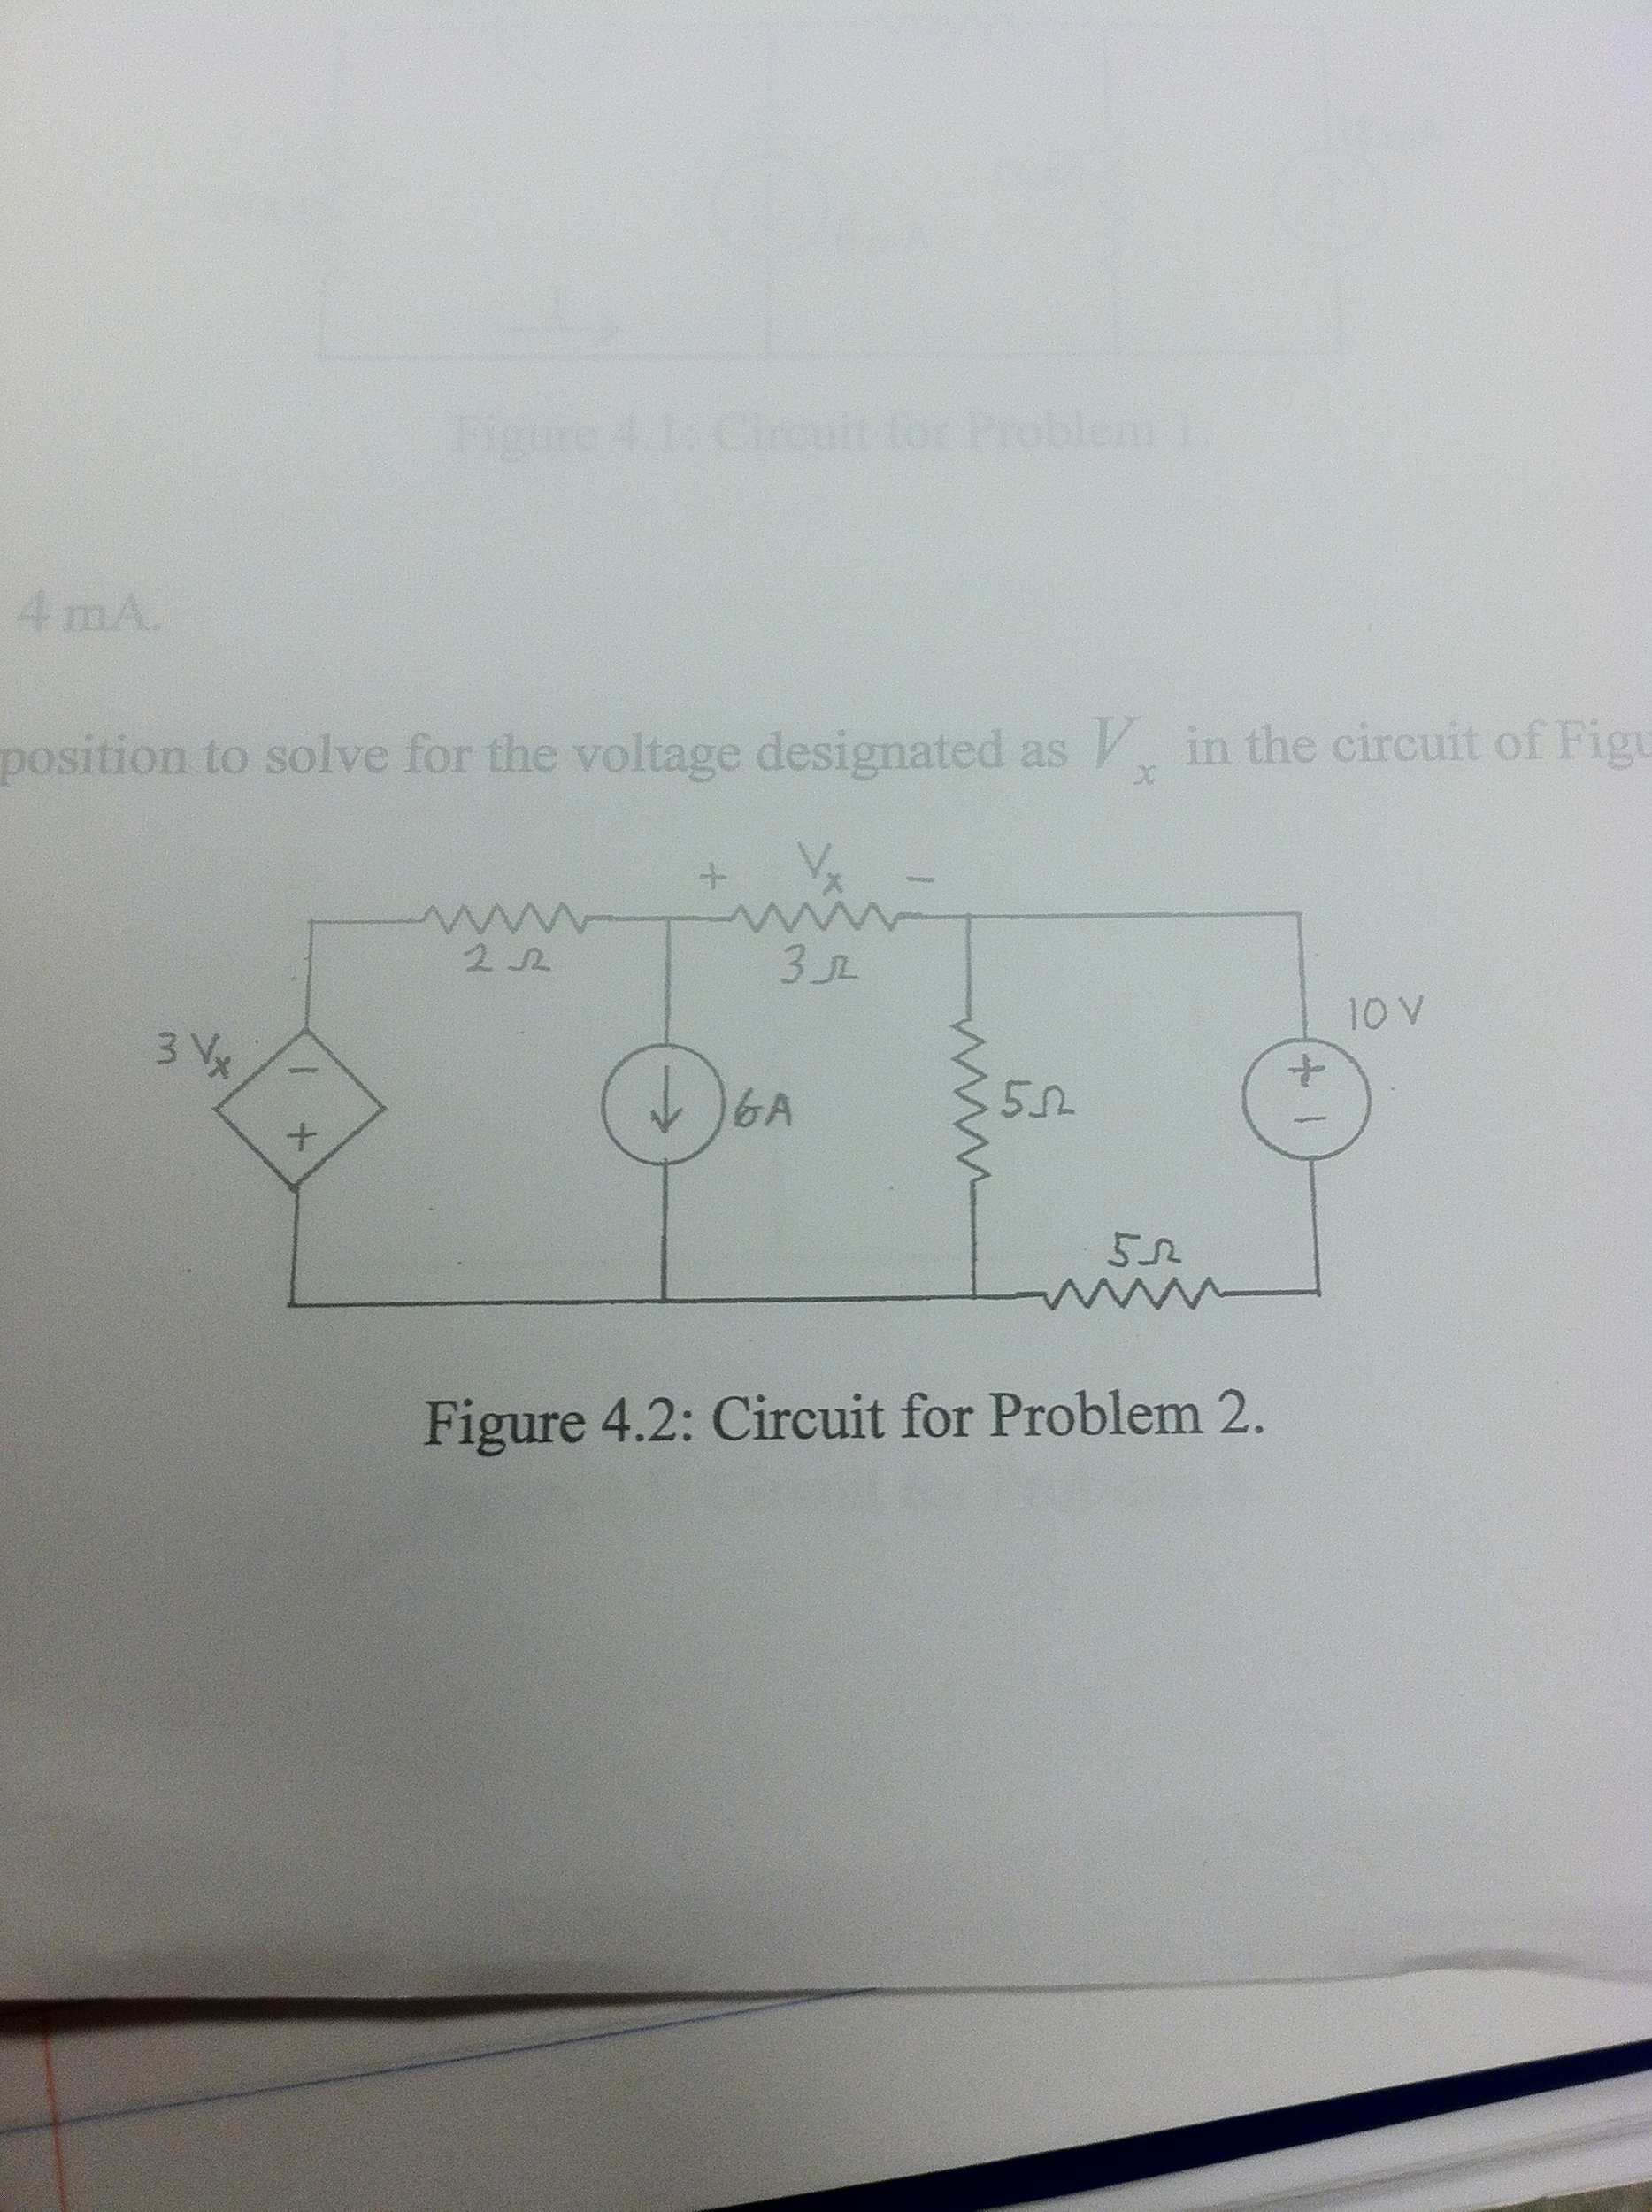 Position to solve for the voltage designated as Vx